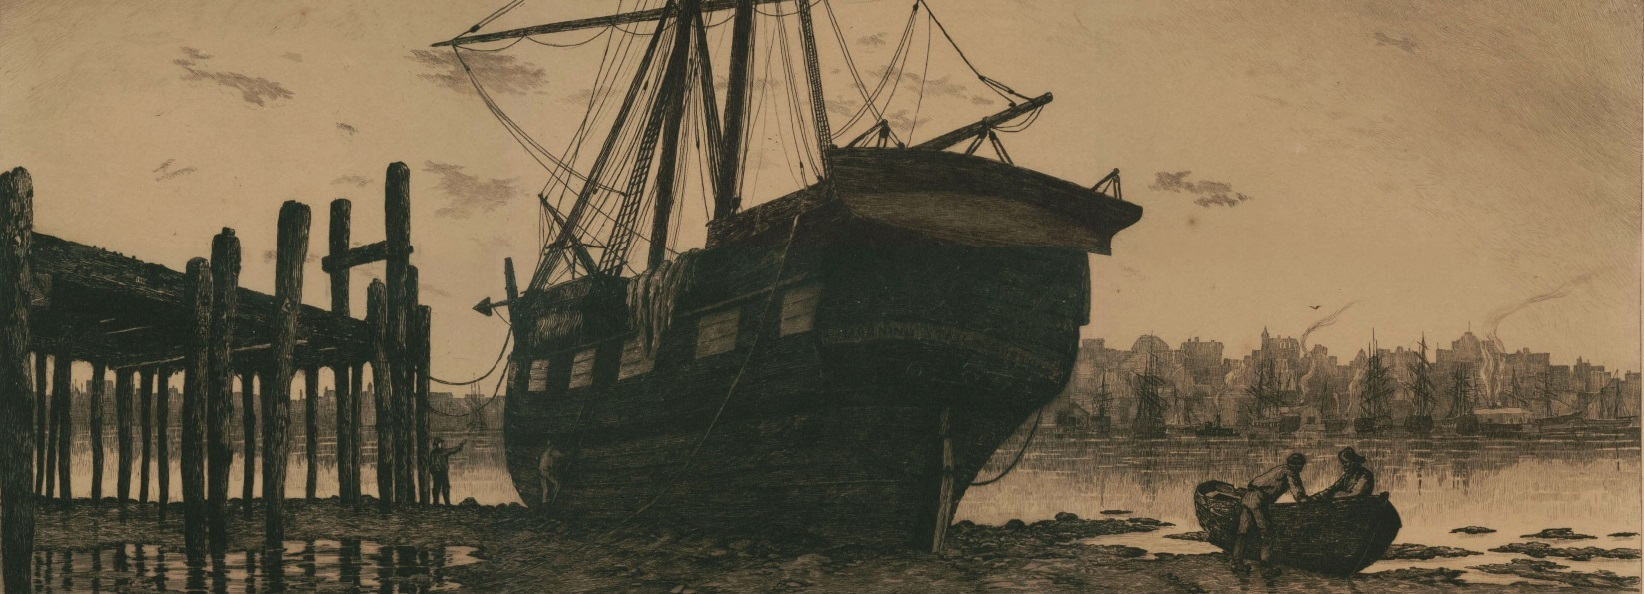 (detail) Charles Mielatz 'The Dismantled Ship' (1887), which inspired Walt Whitman's poem